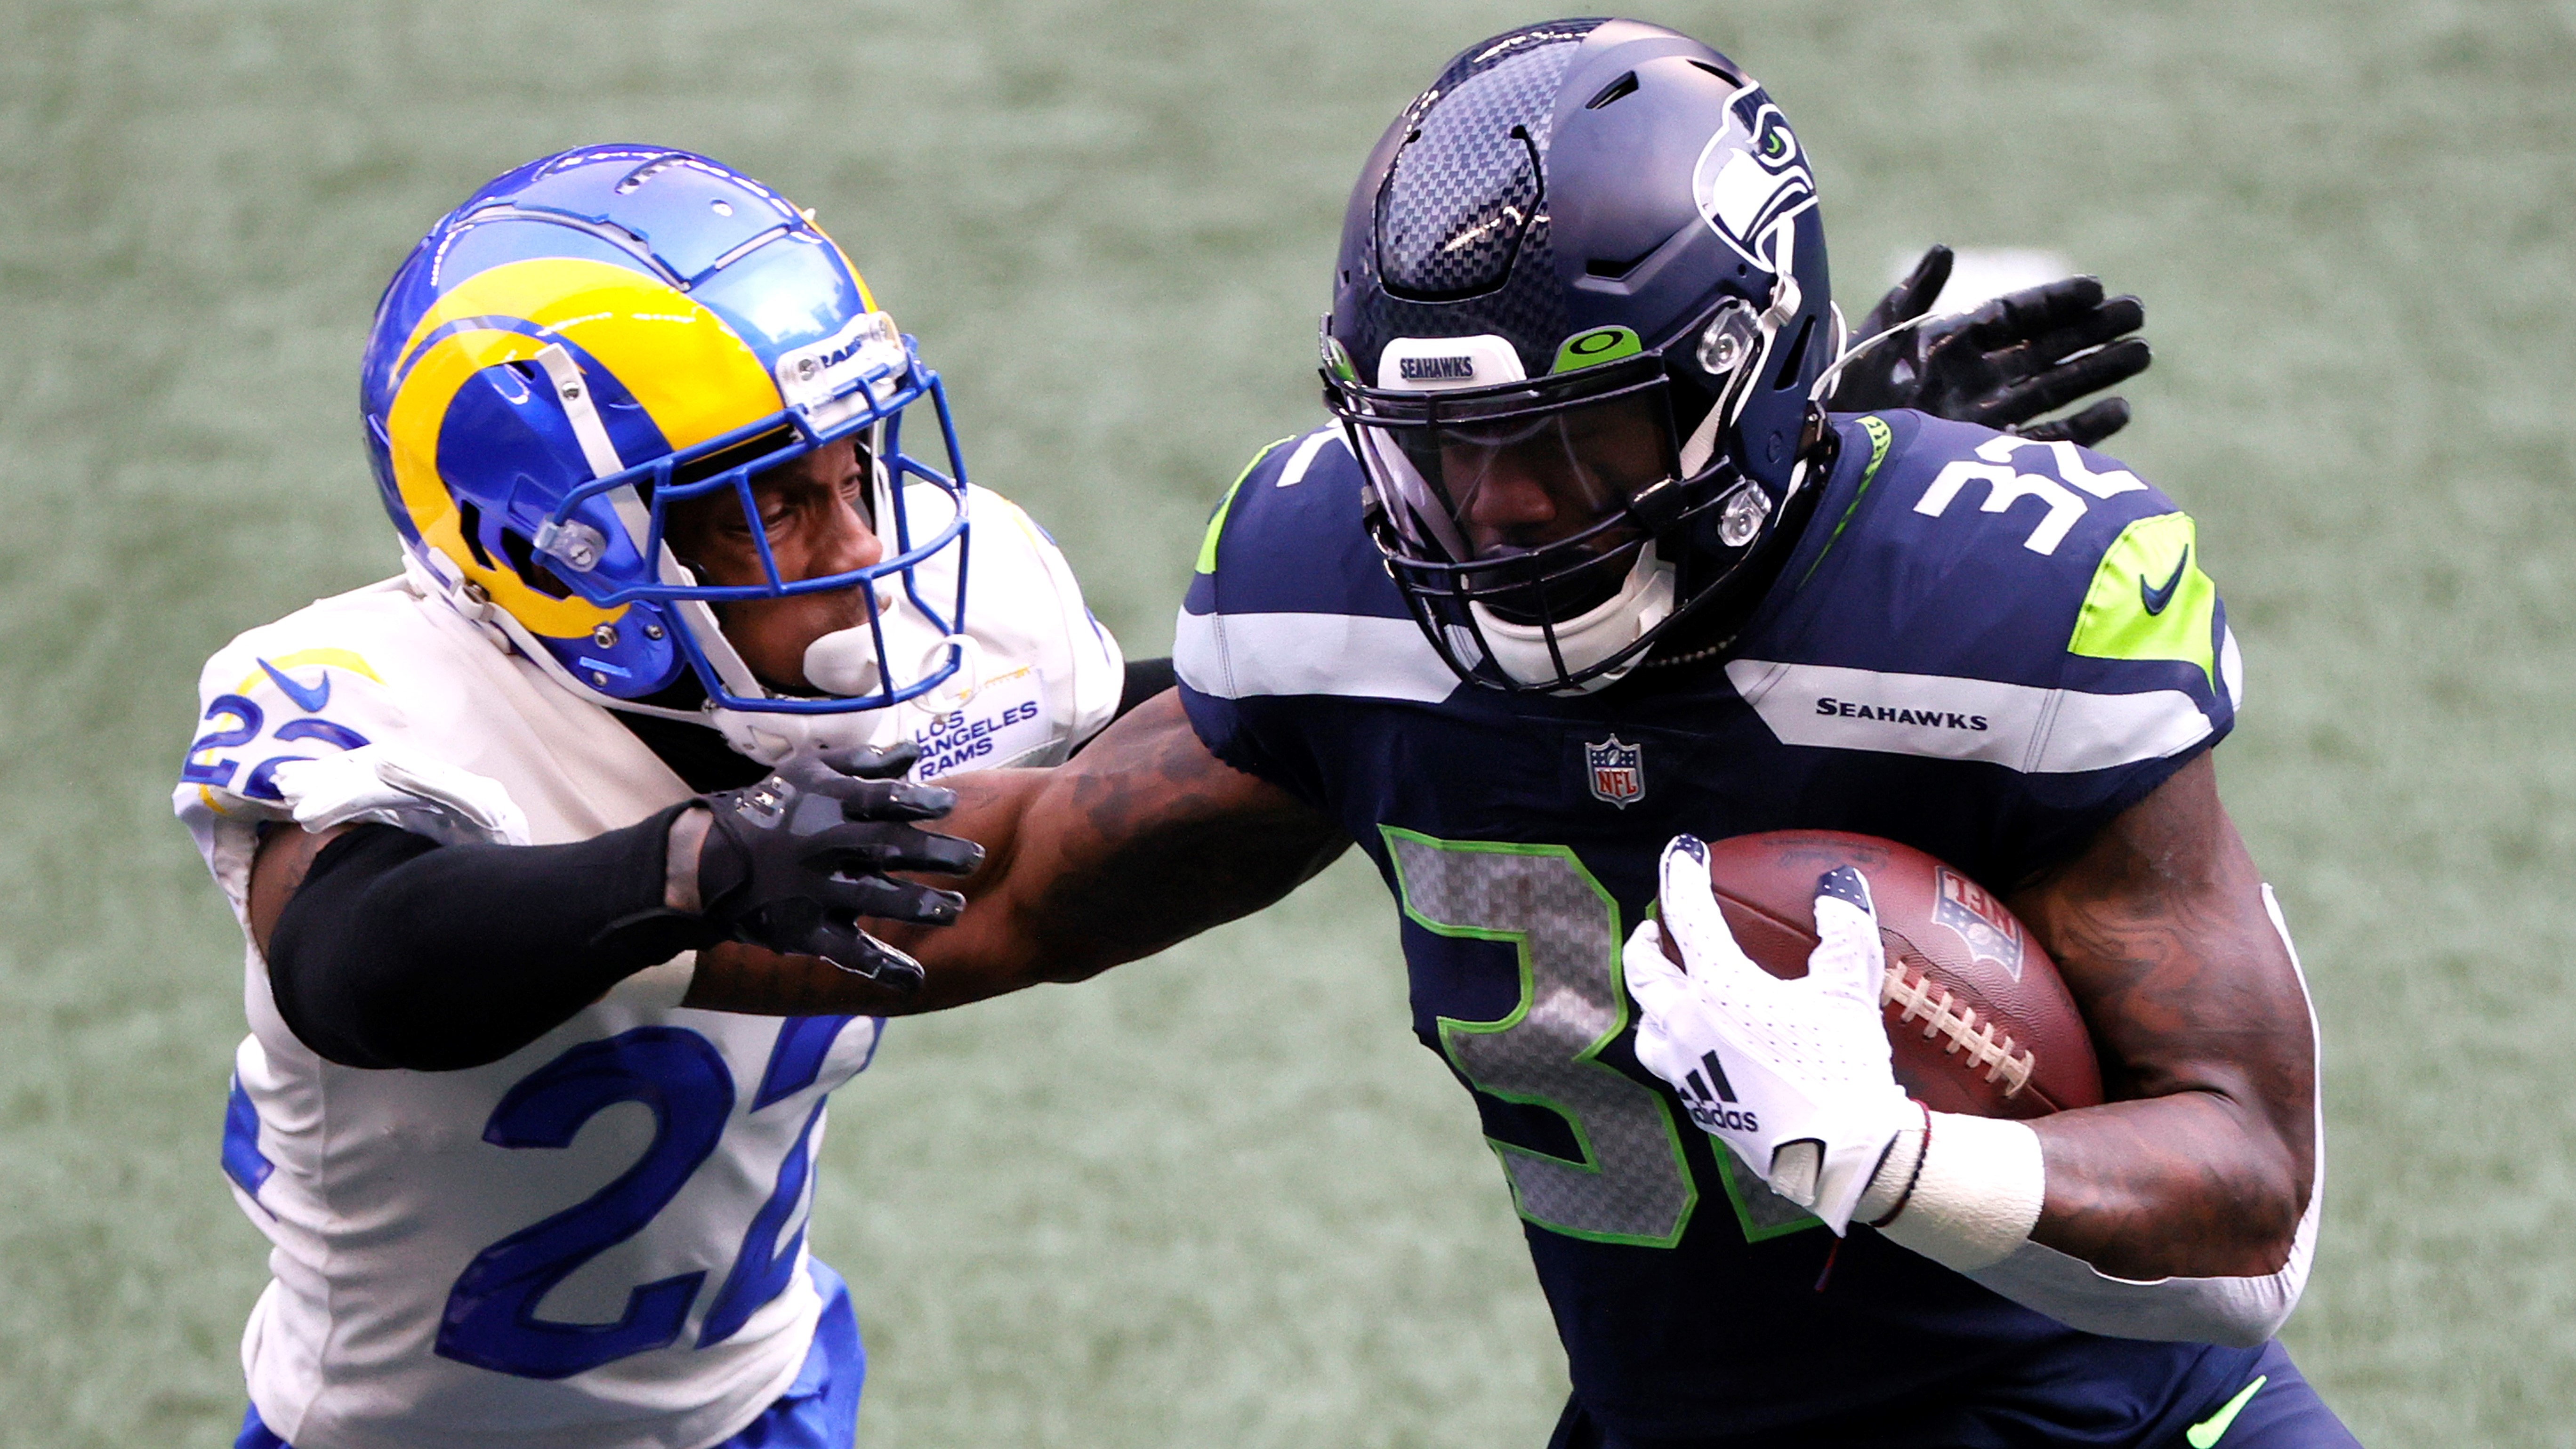 Rams vs Seahawks live stream: how to watch NFL playoffs from anywhere right now thumbnail